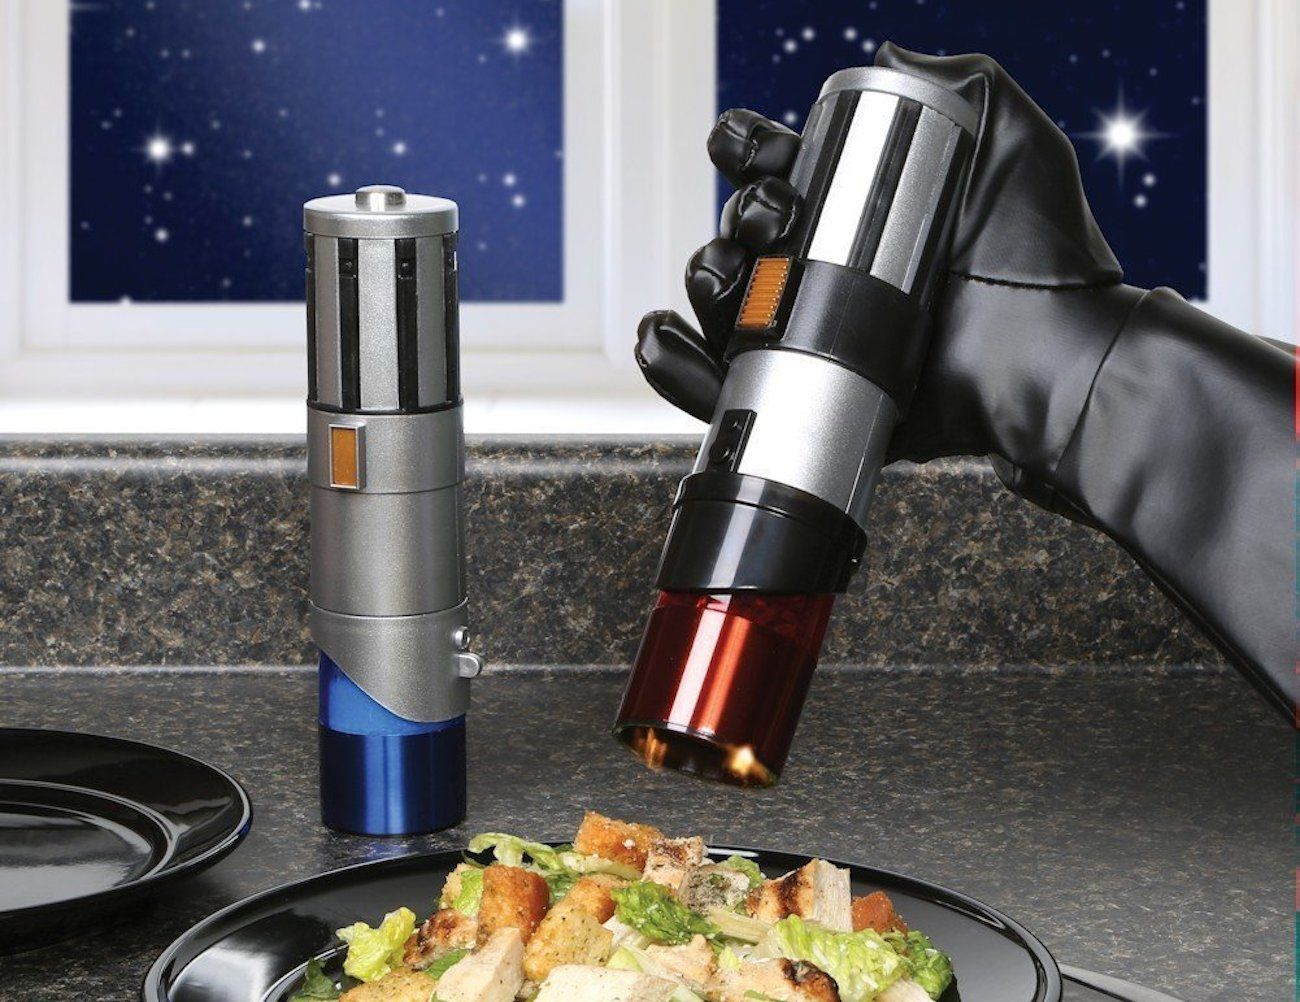 Star+Wars+Lightsaber+Salt+%26amp%3B+Pepper+Shakers